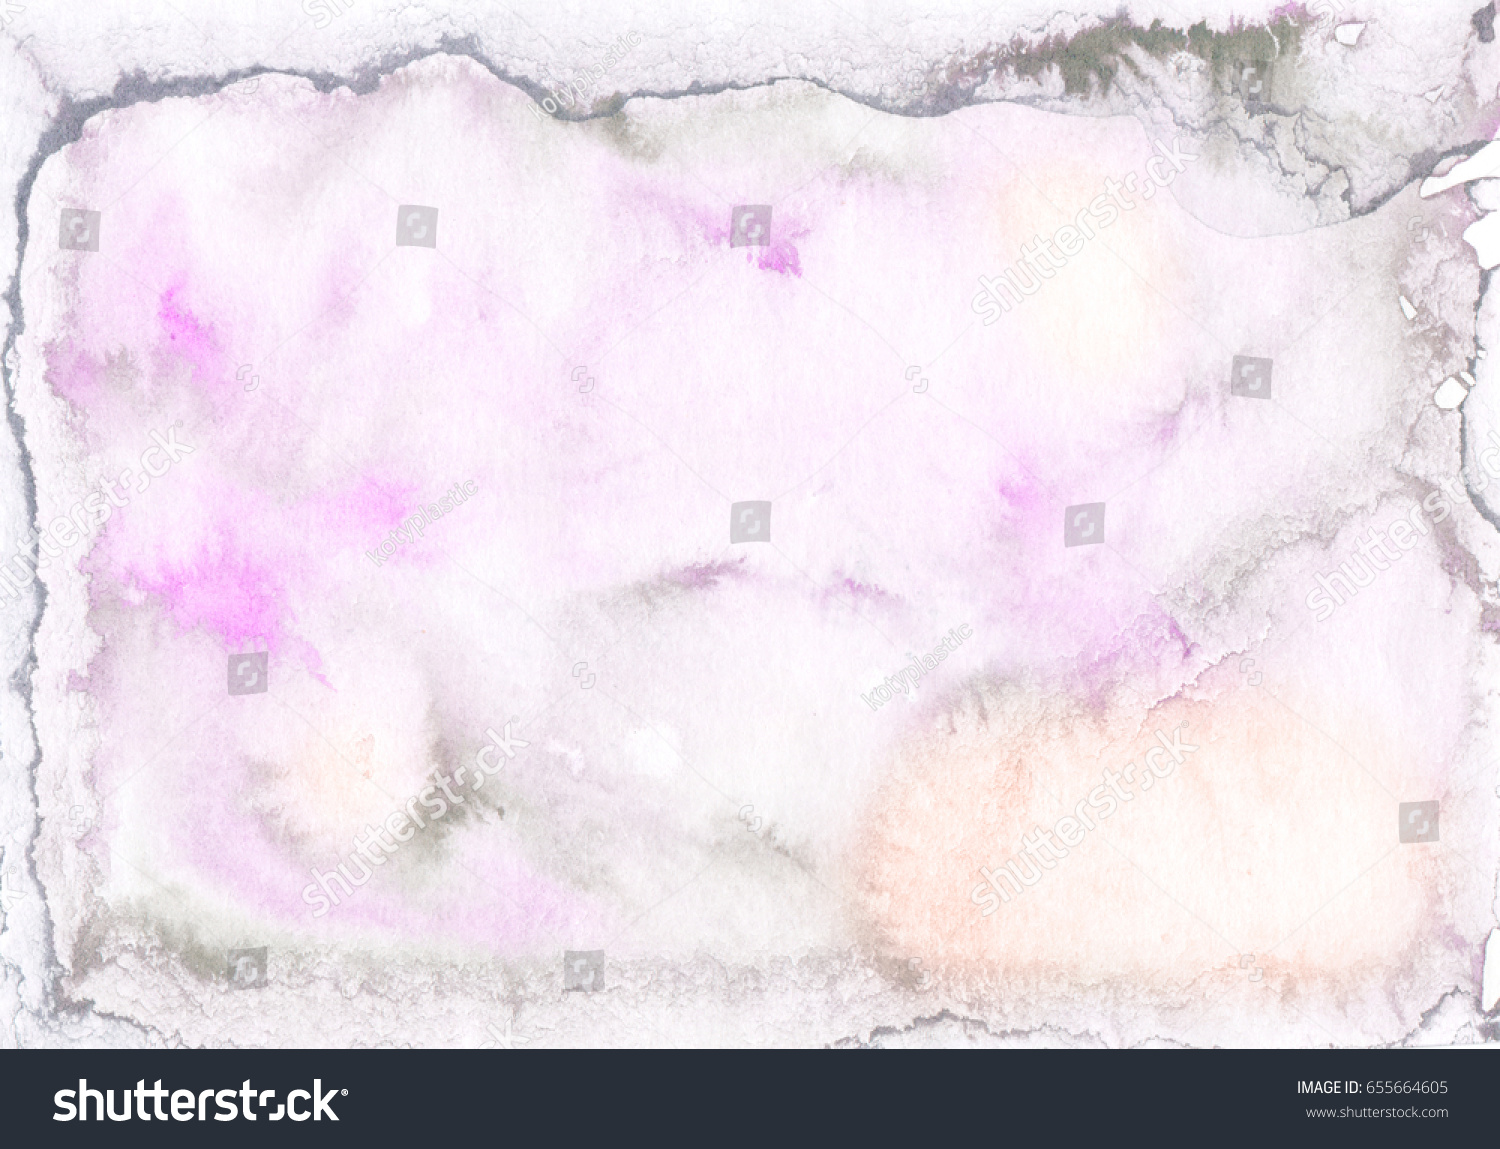 Simple Wallpaper Marble Pastel Pink - stock-photo-marble-ink-in-water-texture-pastel-pink-gray-black-and-purple-abstract-flow-design-beautiful-diy-655664605  HD_23387.jpg